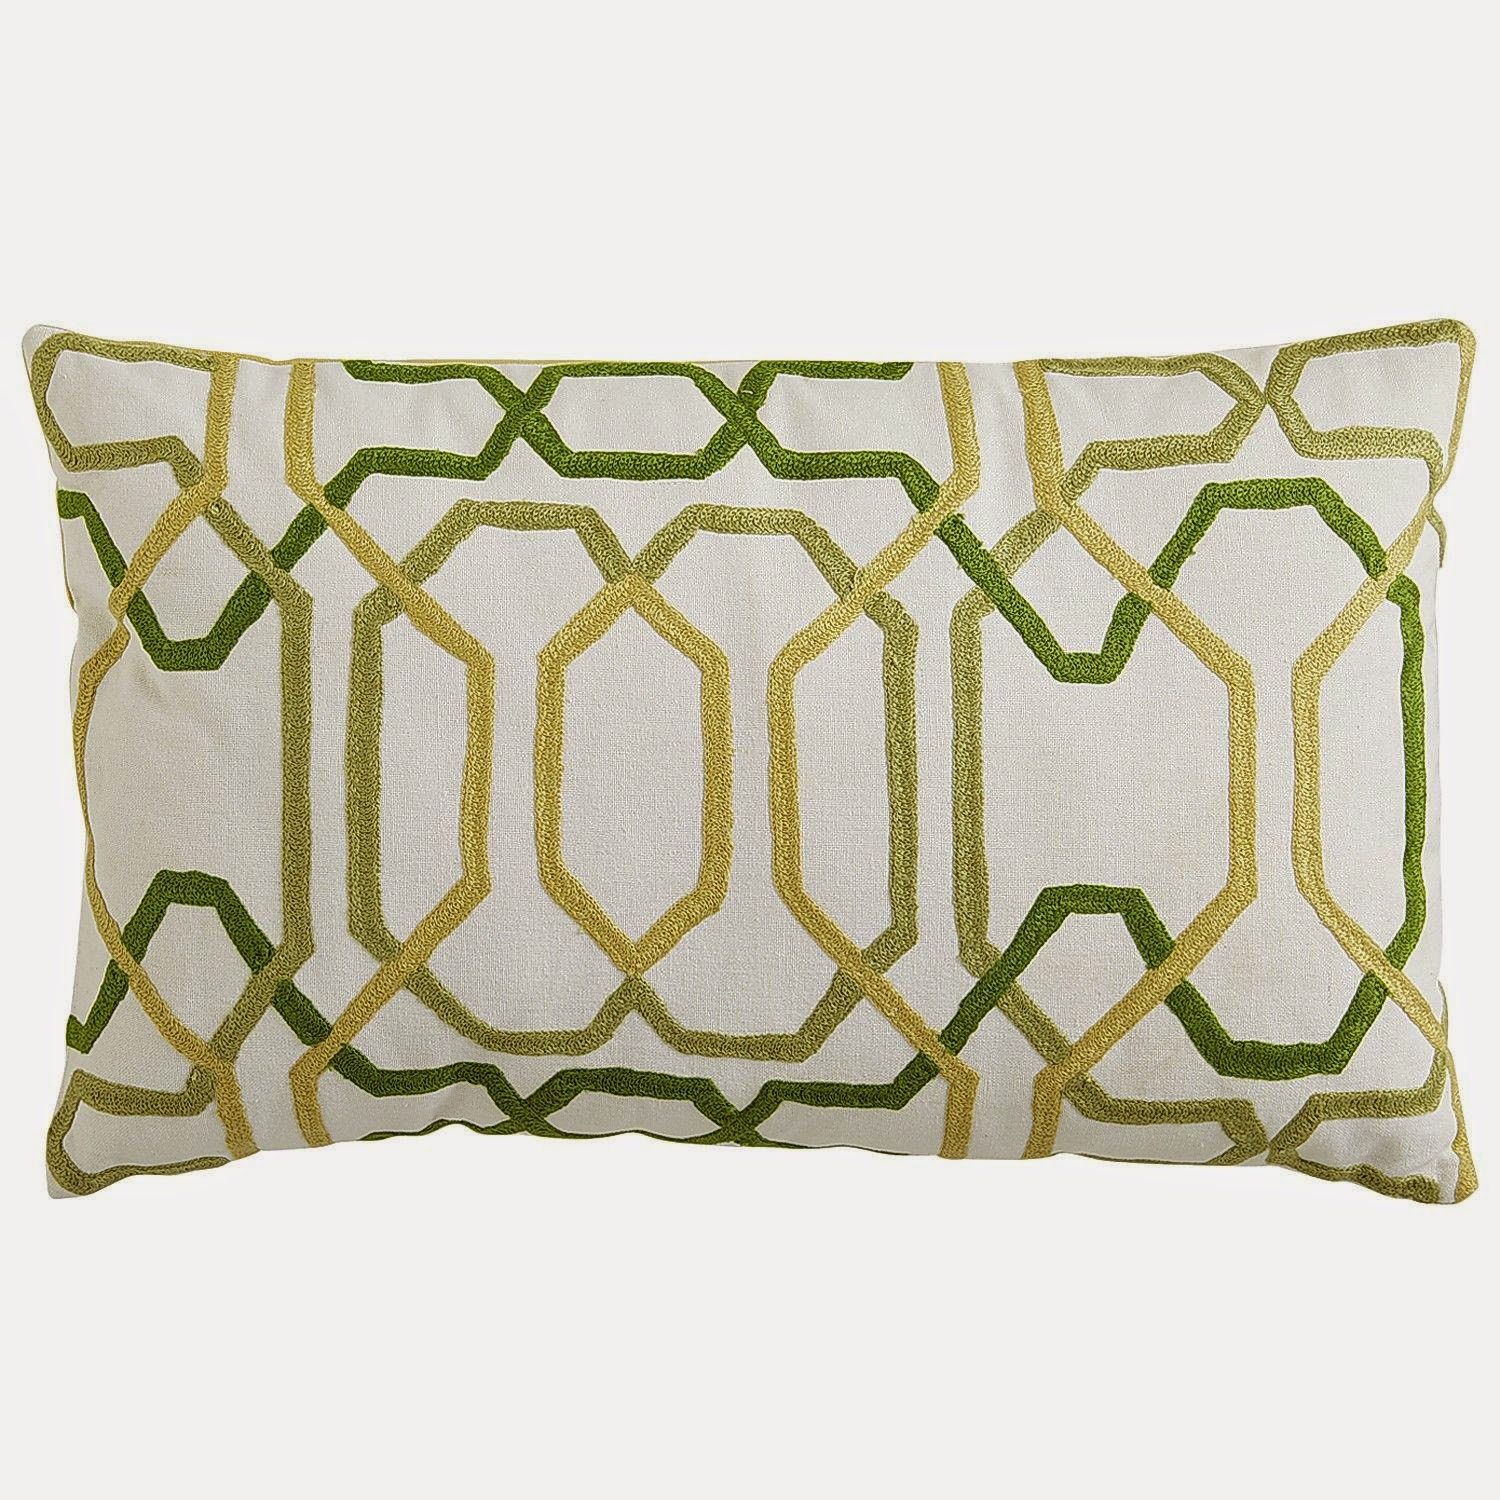 http://www.pier1.com/pillows-cushions/pillows,default,sc.html?icid=cat_pillows-category_tile-pillows#start=0&sz=12&showAll=296